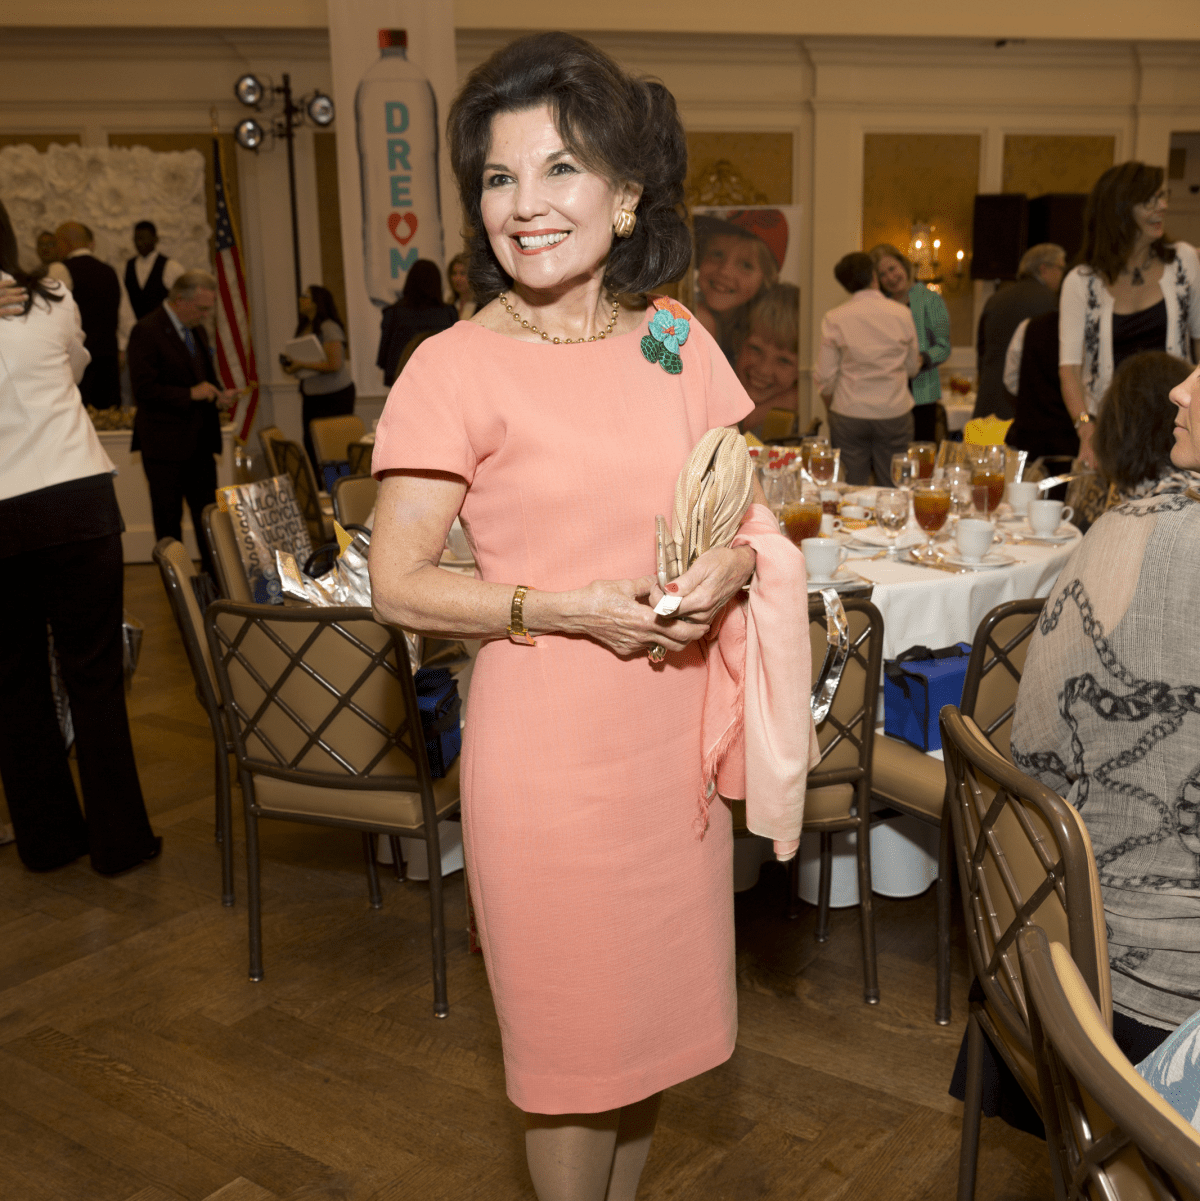 Houston, I Am Waters 5th Annual Supermodel Luncheon, May 2016, Linda McReynolds